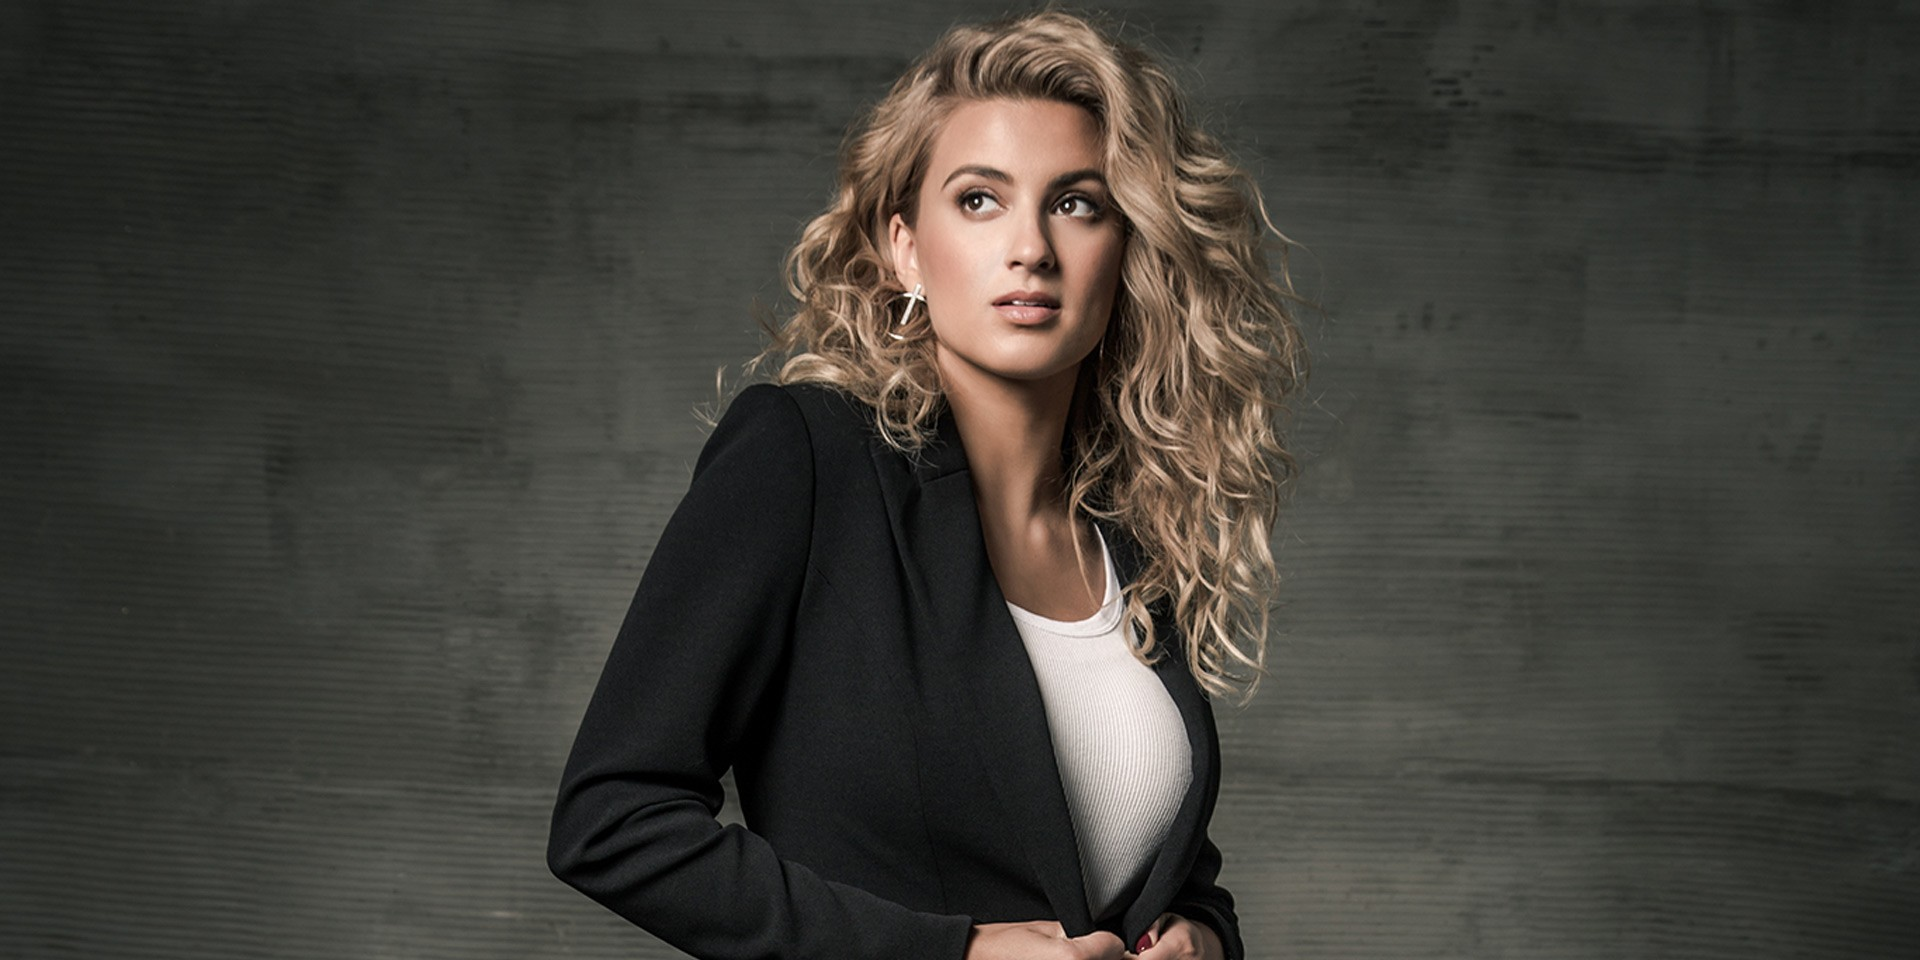 Tori Kelly is coming to Asia in 2020 – Manila, Seoul, Tokyo confirmed